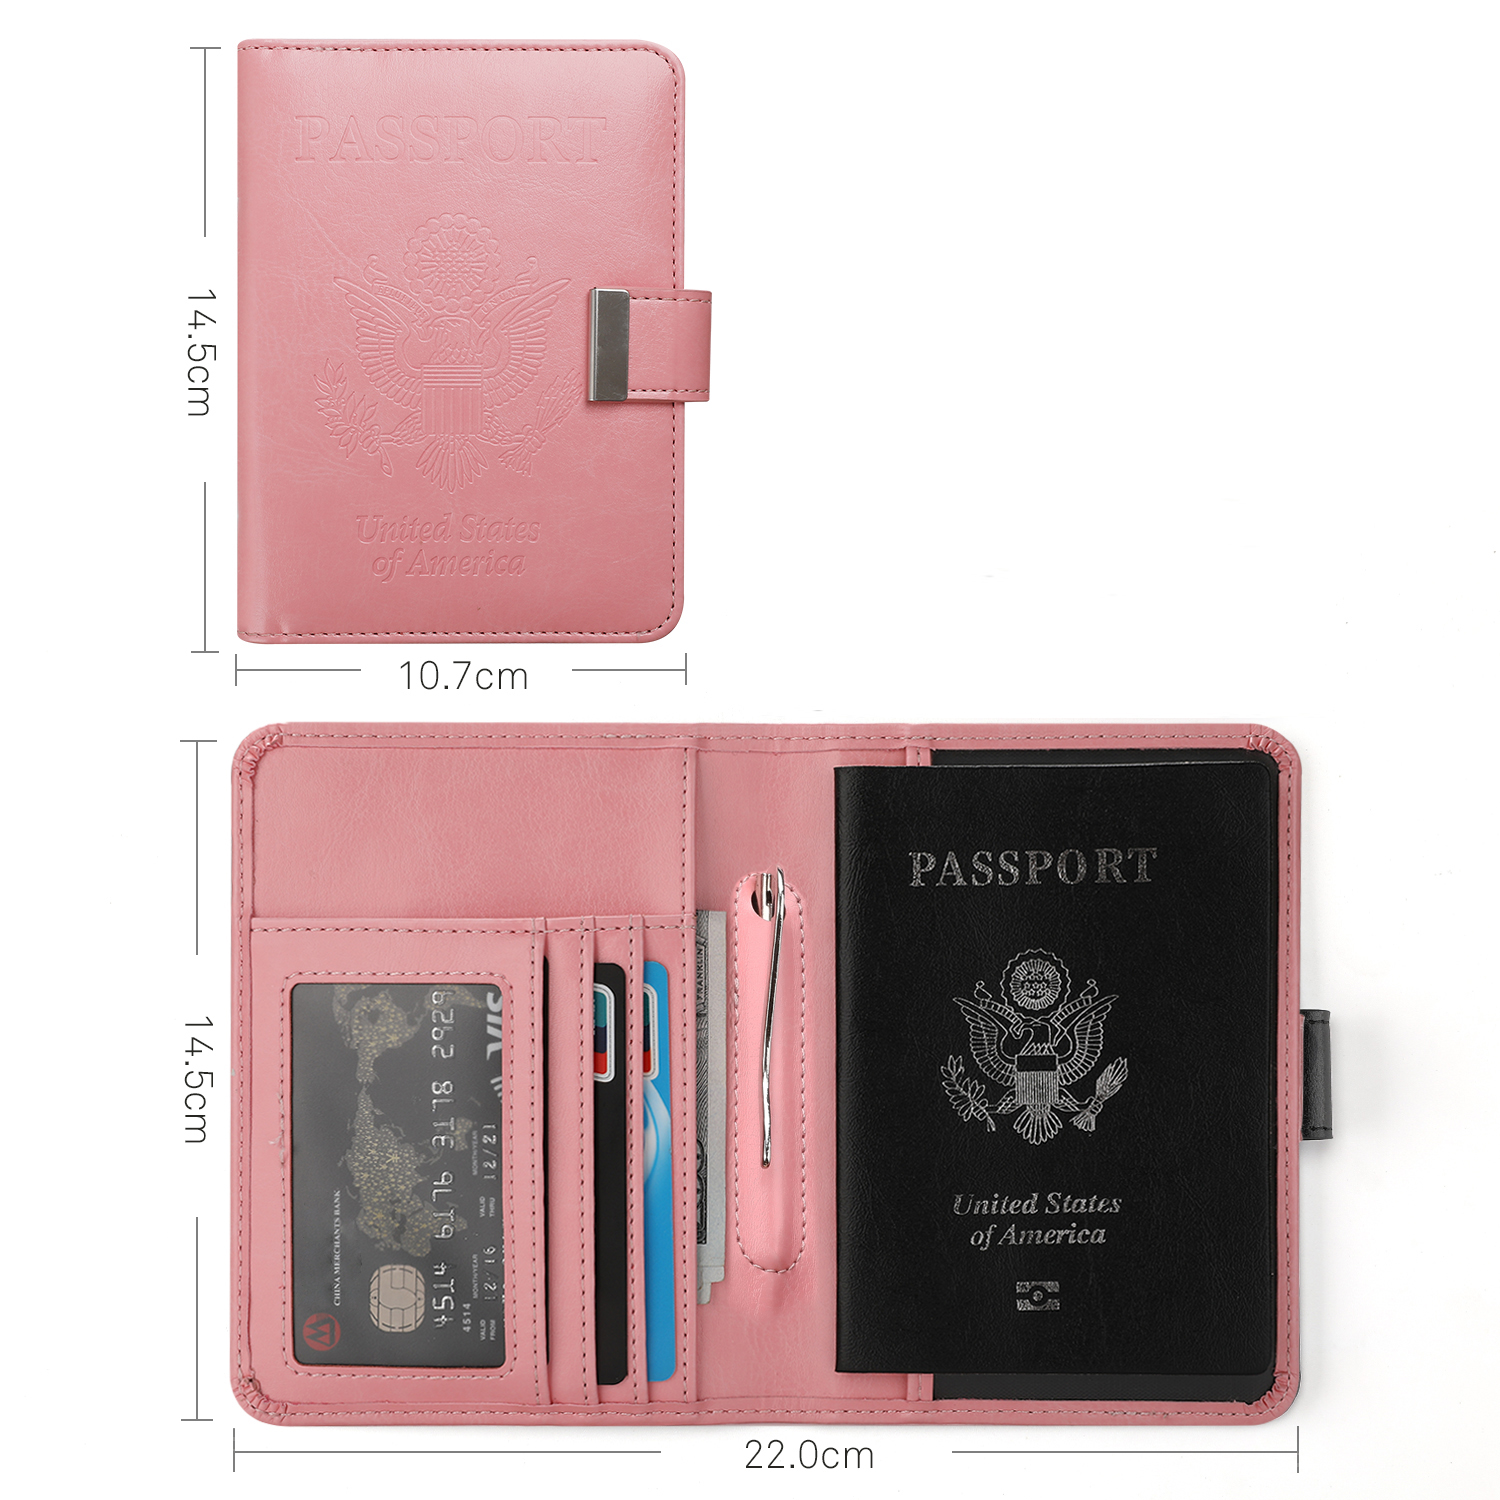 Passport Holder Case Tower In The City Protective Premium Leather RFID Blocking Wallet Case for Passport